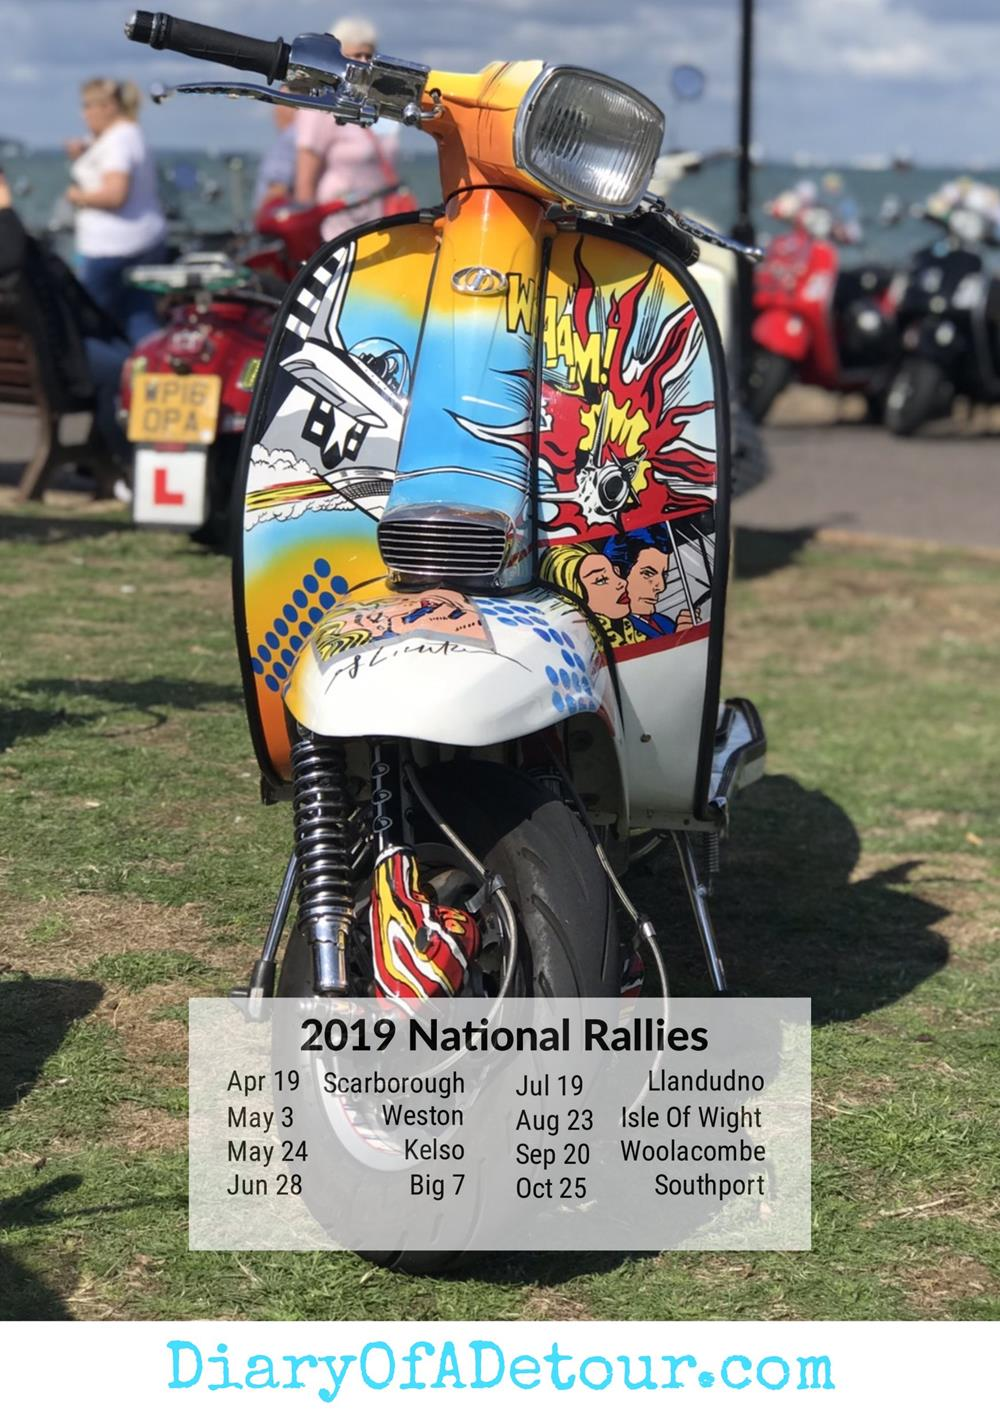 Andy Warhol custom scooter wallpaper with 2019 national rally dates